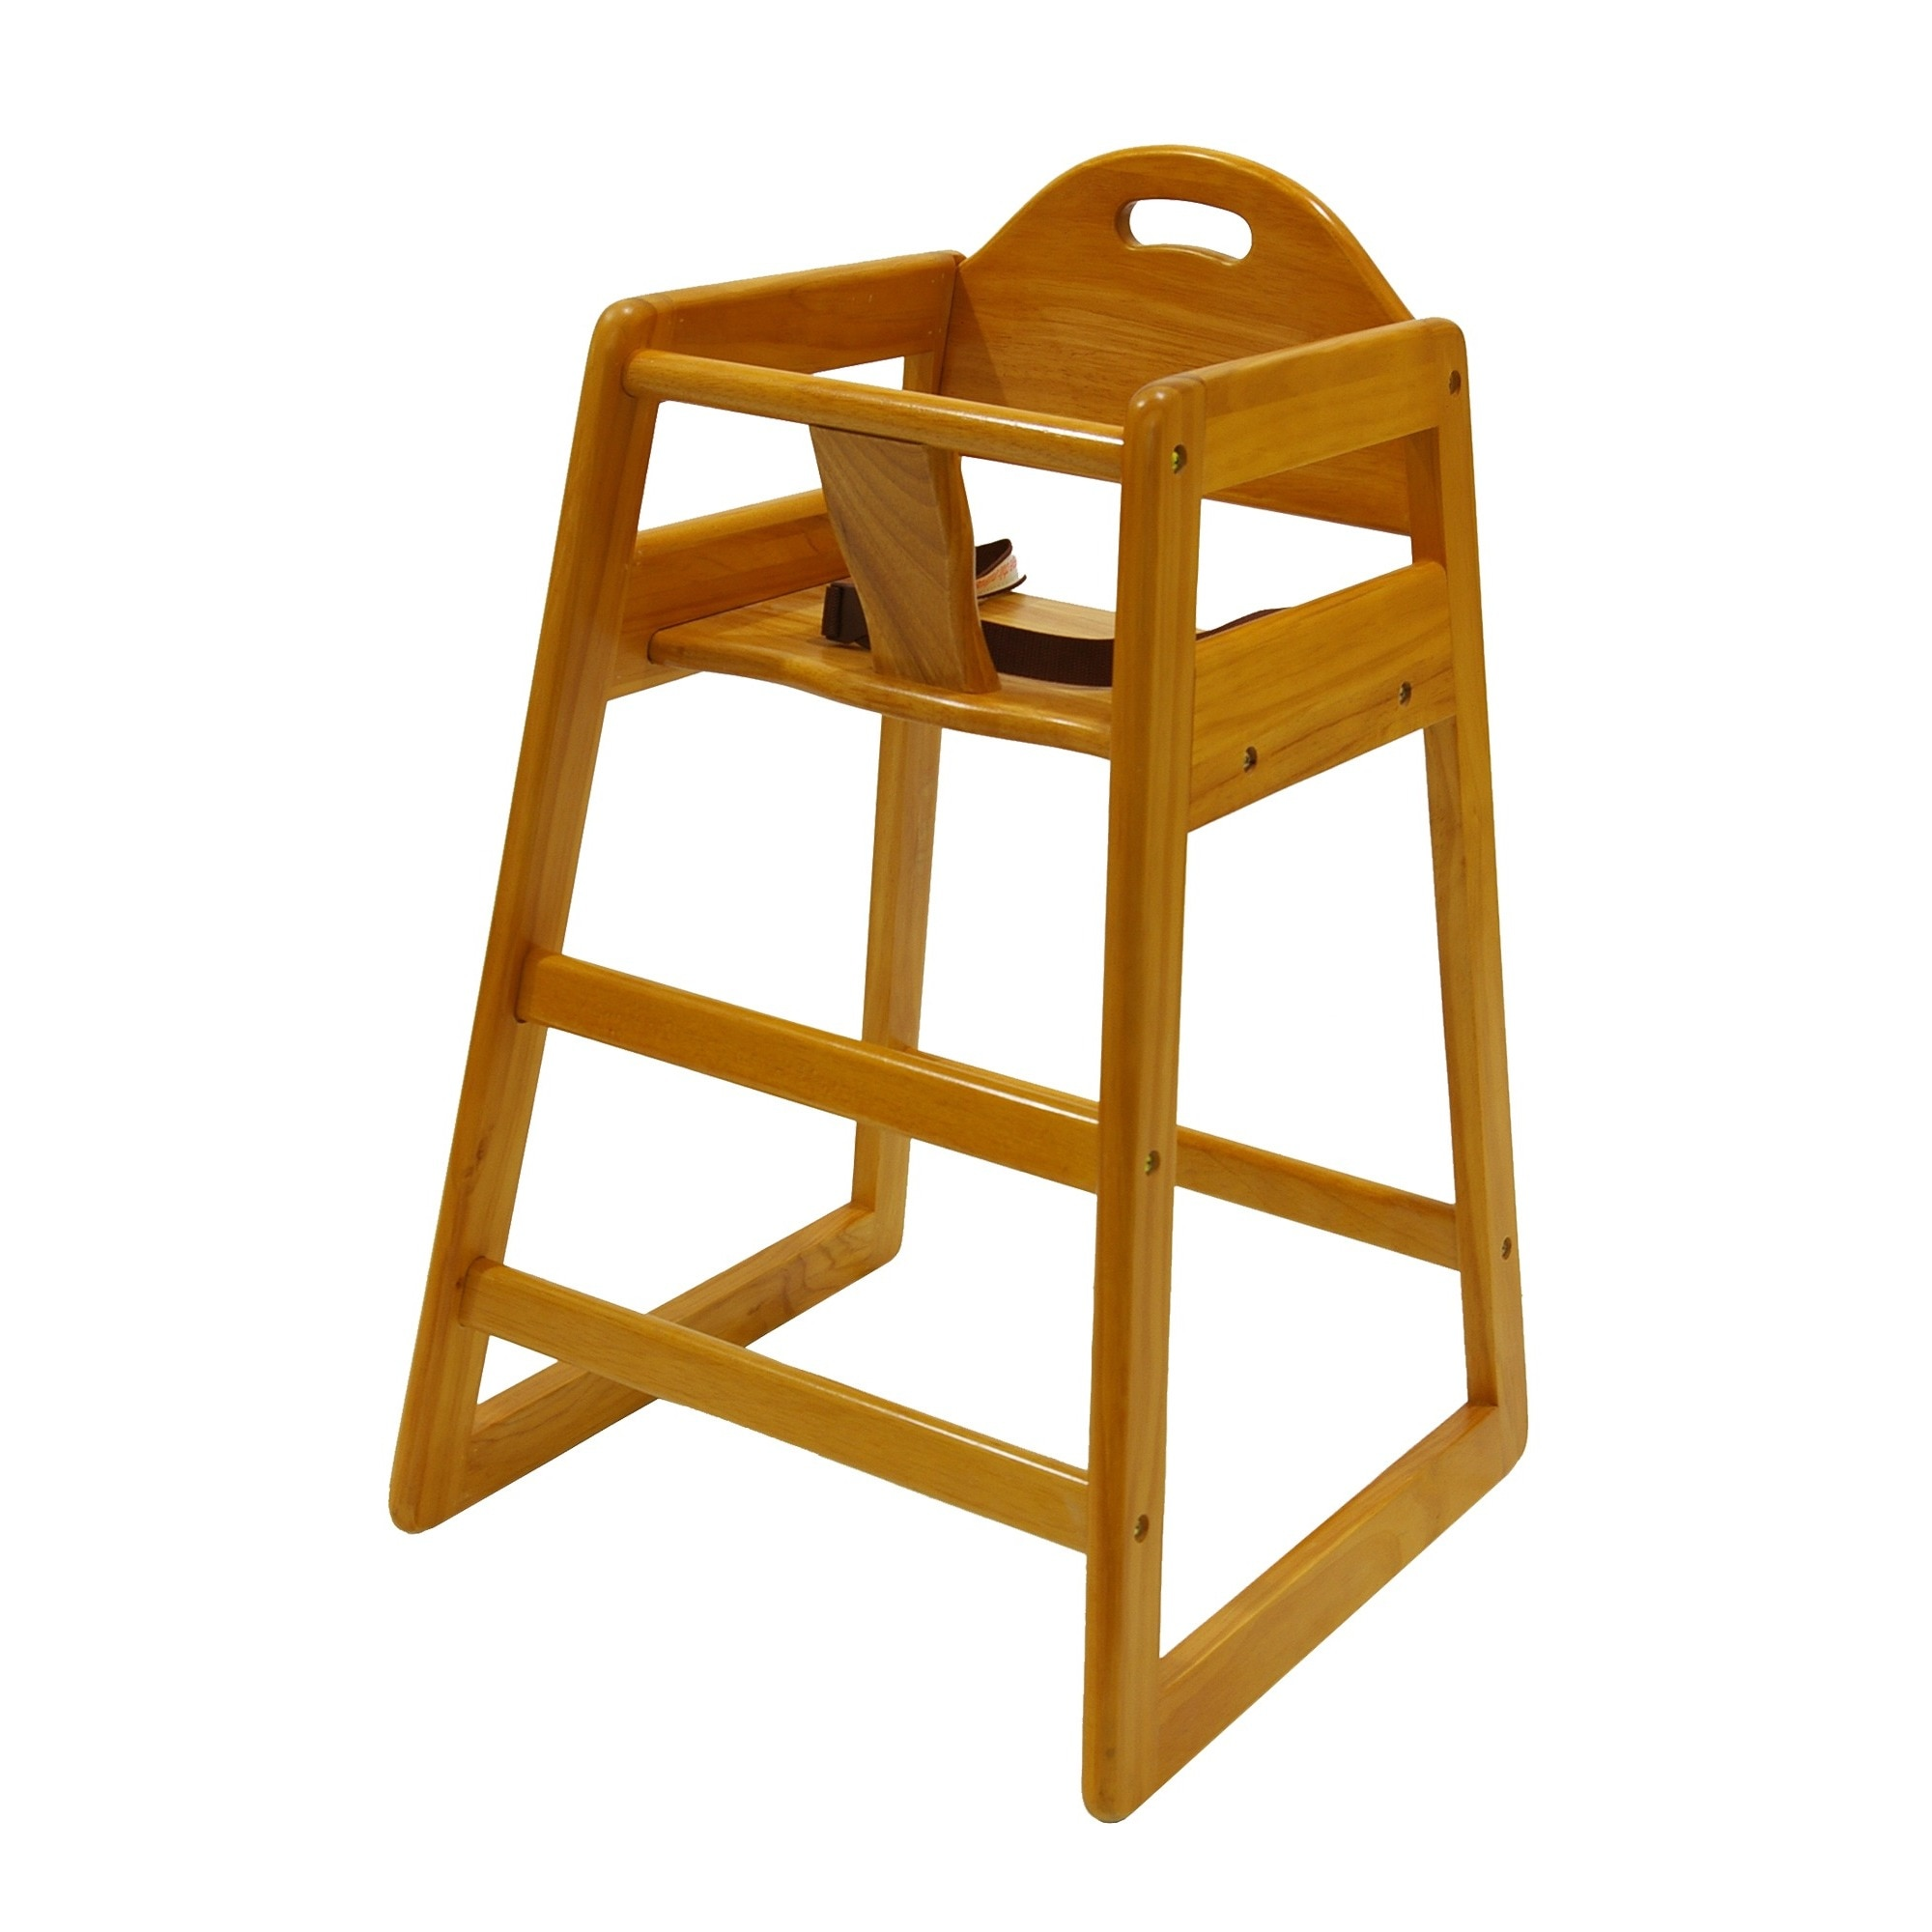 Wooden Baby High Chair La Baby Stackable Wooden High Chair